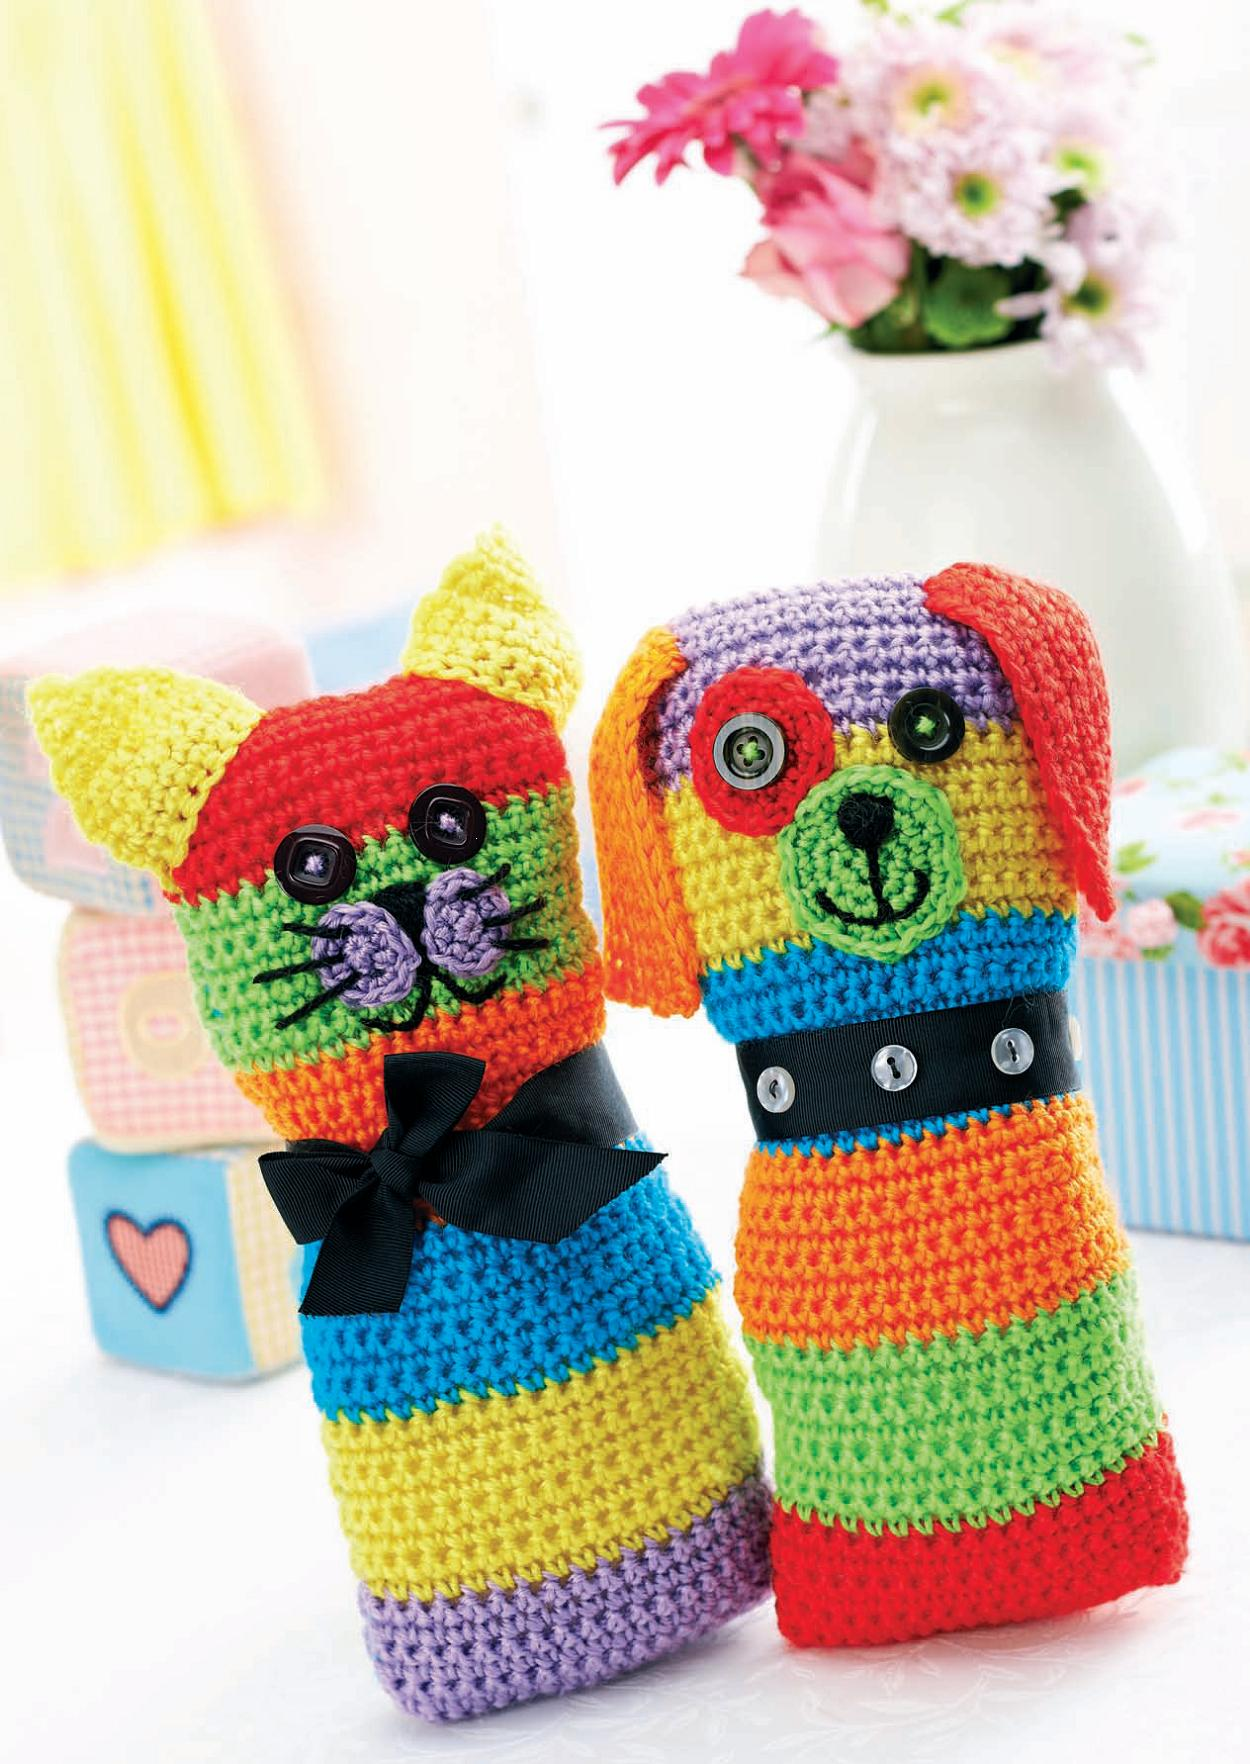 Crochet Cat And Dog Toys Crochet Pattern